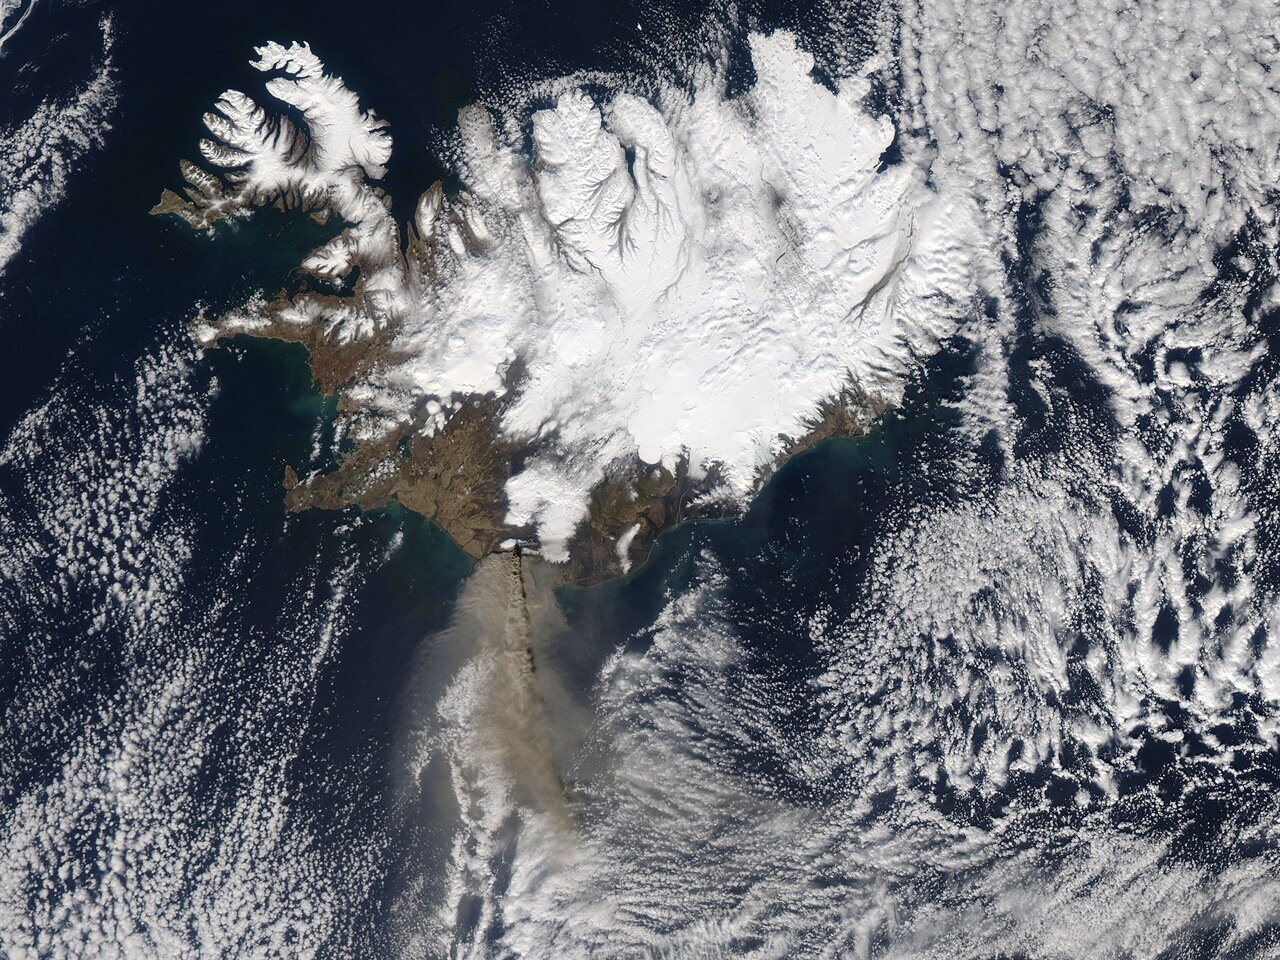 The MODIS instrument on NASA's Aqua satellite captured an Ash plume from Eyjafjallajokull Volcano over the North Atlantic at 13:20 UTC (9:20 a.m. EDT) on April 17, 2010. The Eyjafjallajokull volcano in Iceland erupted Wednesday, April 14, for the seco